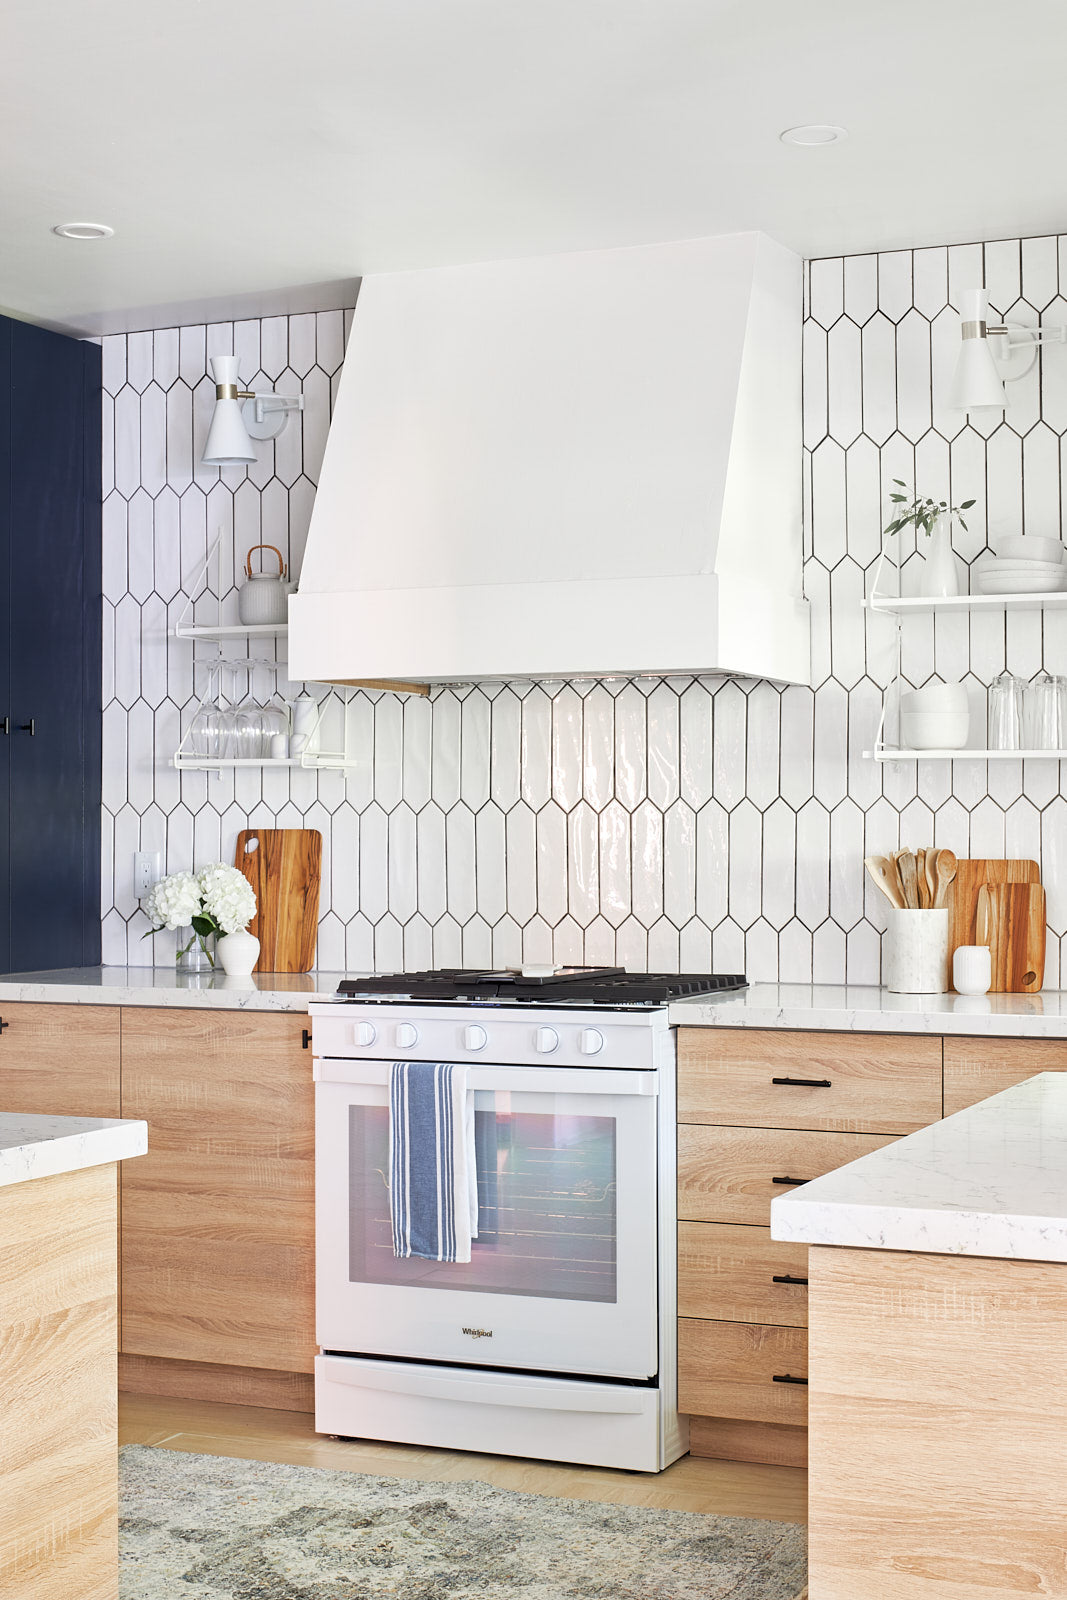 Tiled backsplash, jo alcorn